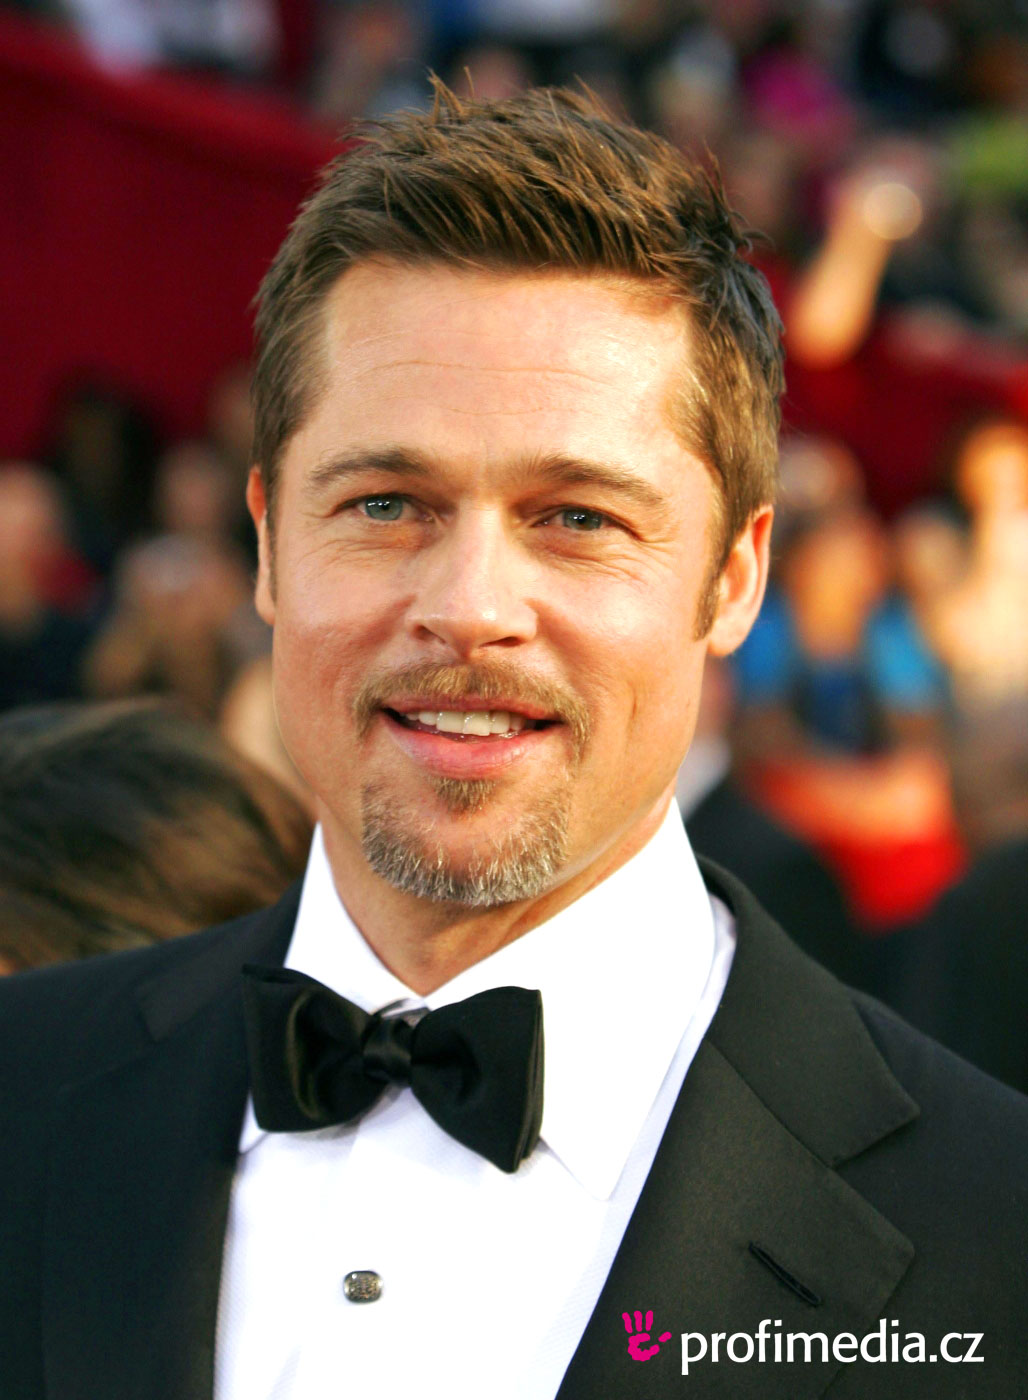 brad pitt frisur zum ausprobieren in efrisuren. Black Bedroom Furniture Sets. Home Design Ideas